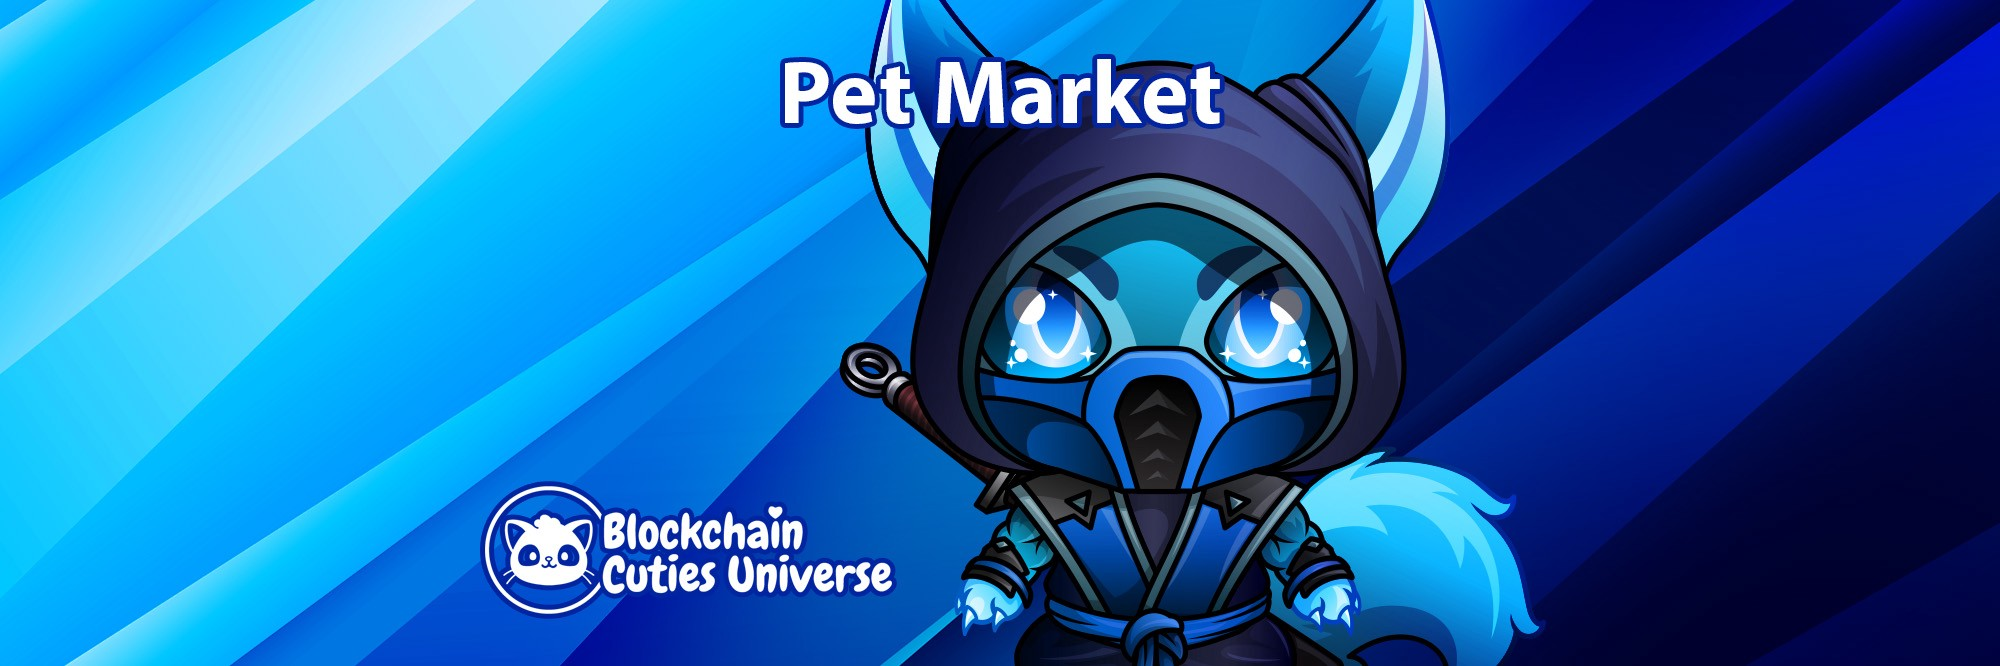 Best Offers on the Pet Market